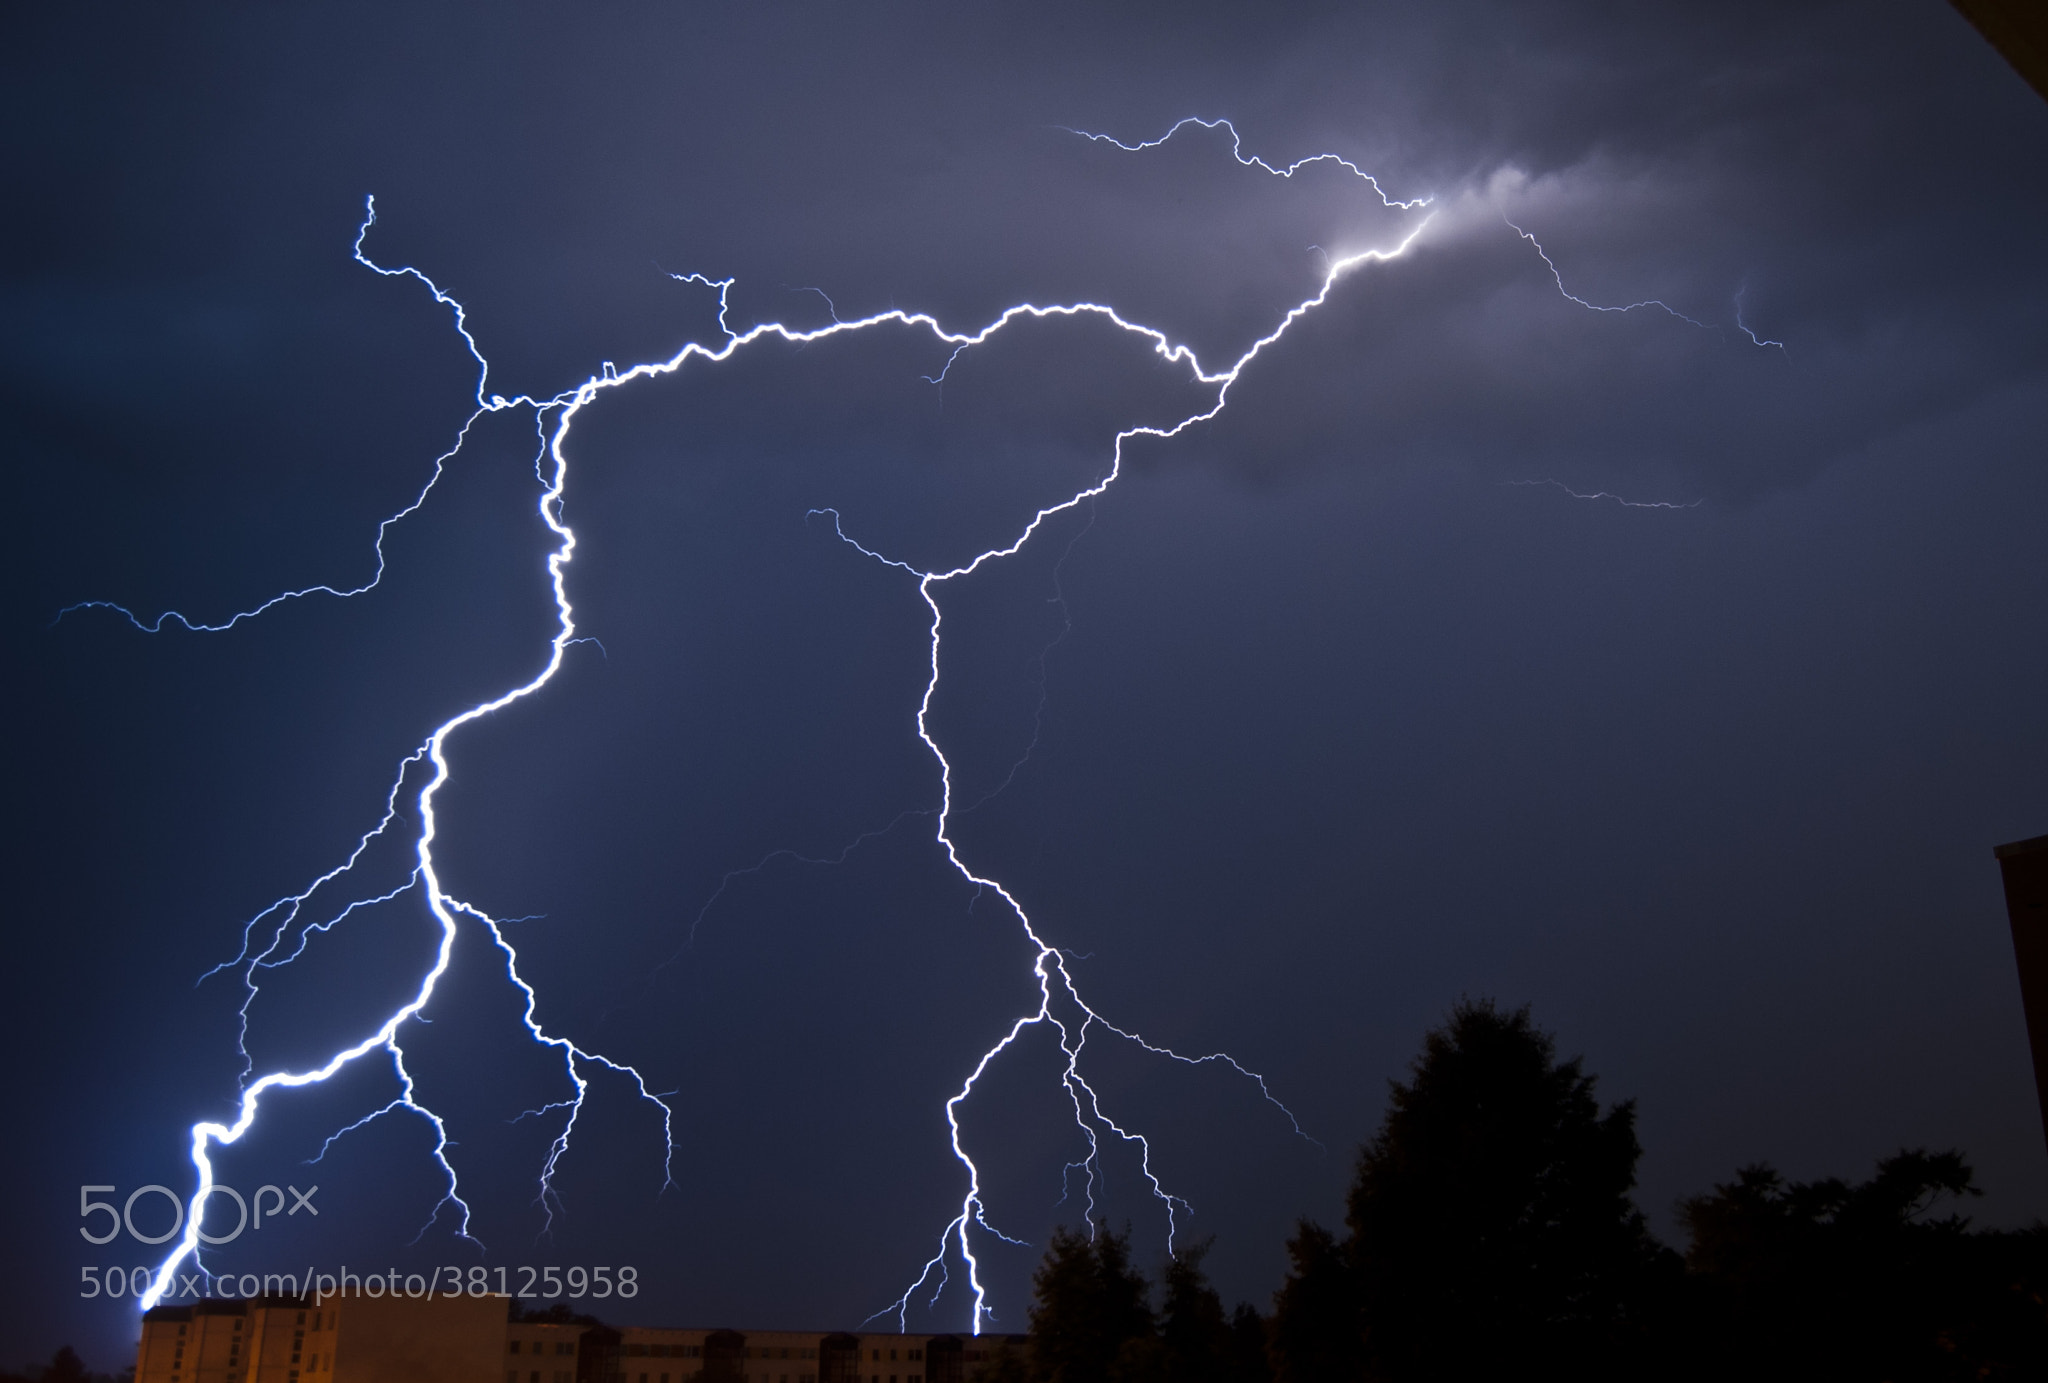 Photograph Thunderstorm by Javier R. R. on 500px